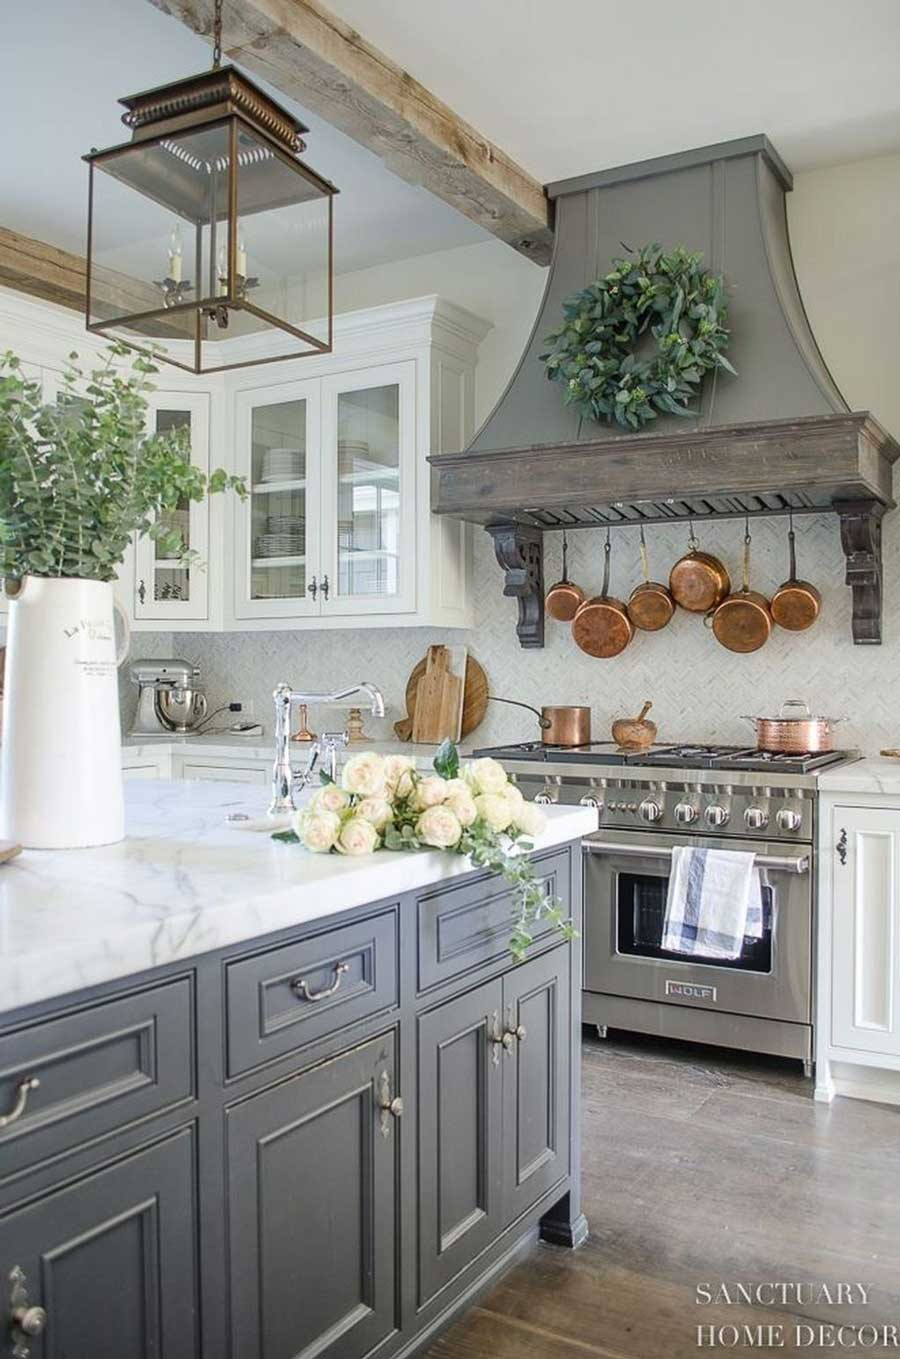 French Country Cottage Kitchen with Chevron Tile Backsplash